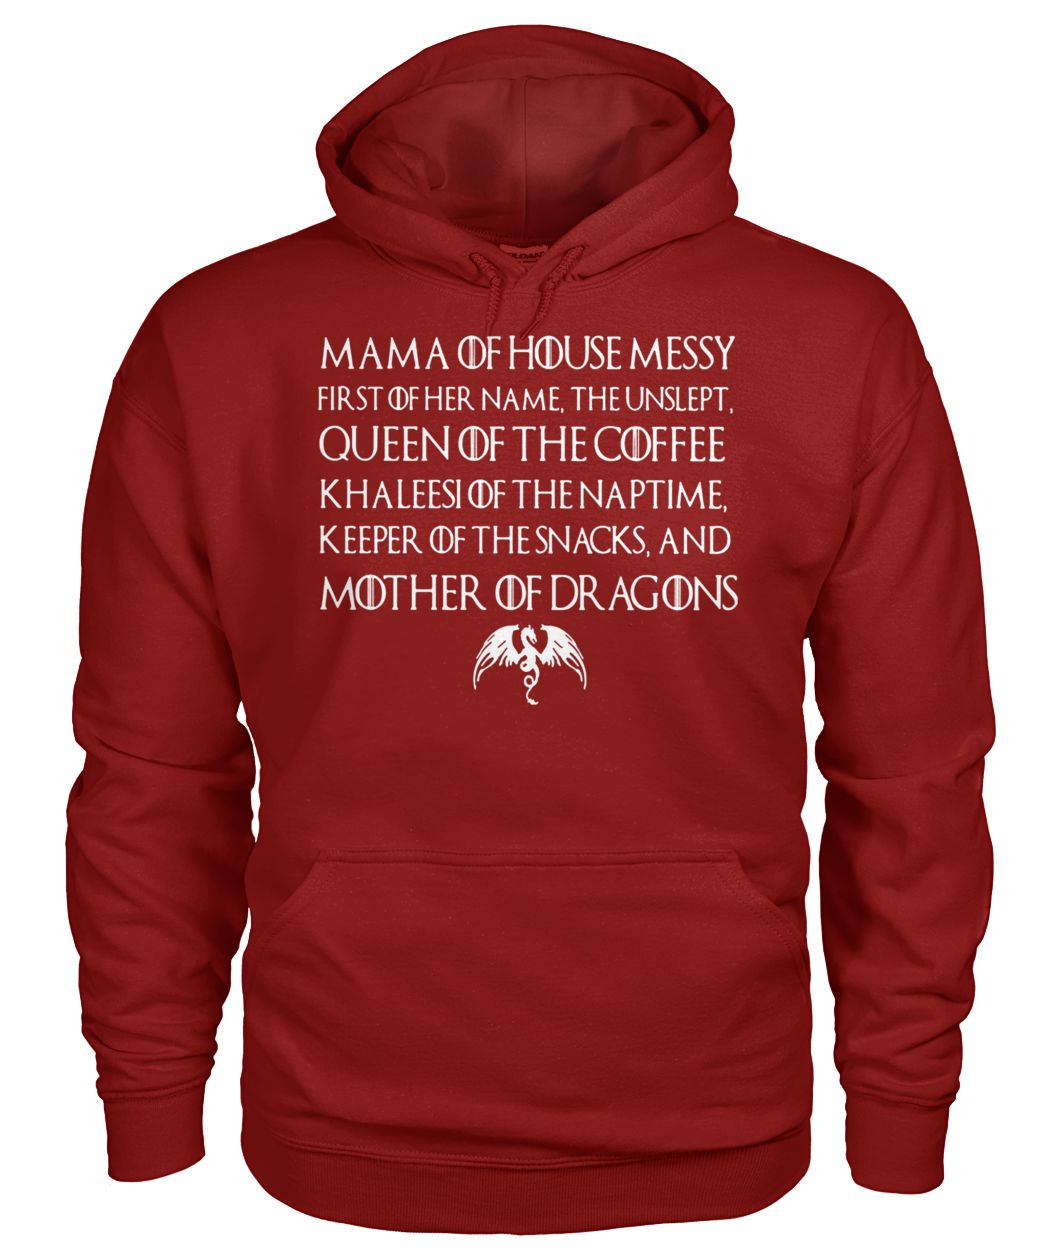 Game of thrones mama of house queen of the coffee khaleesi of the naptime mother of dragons gildan hoodie